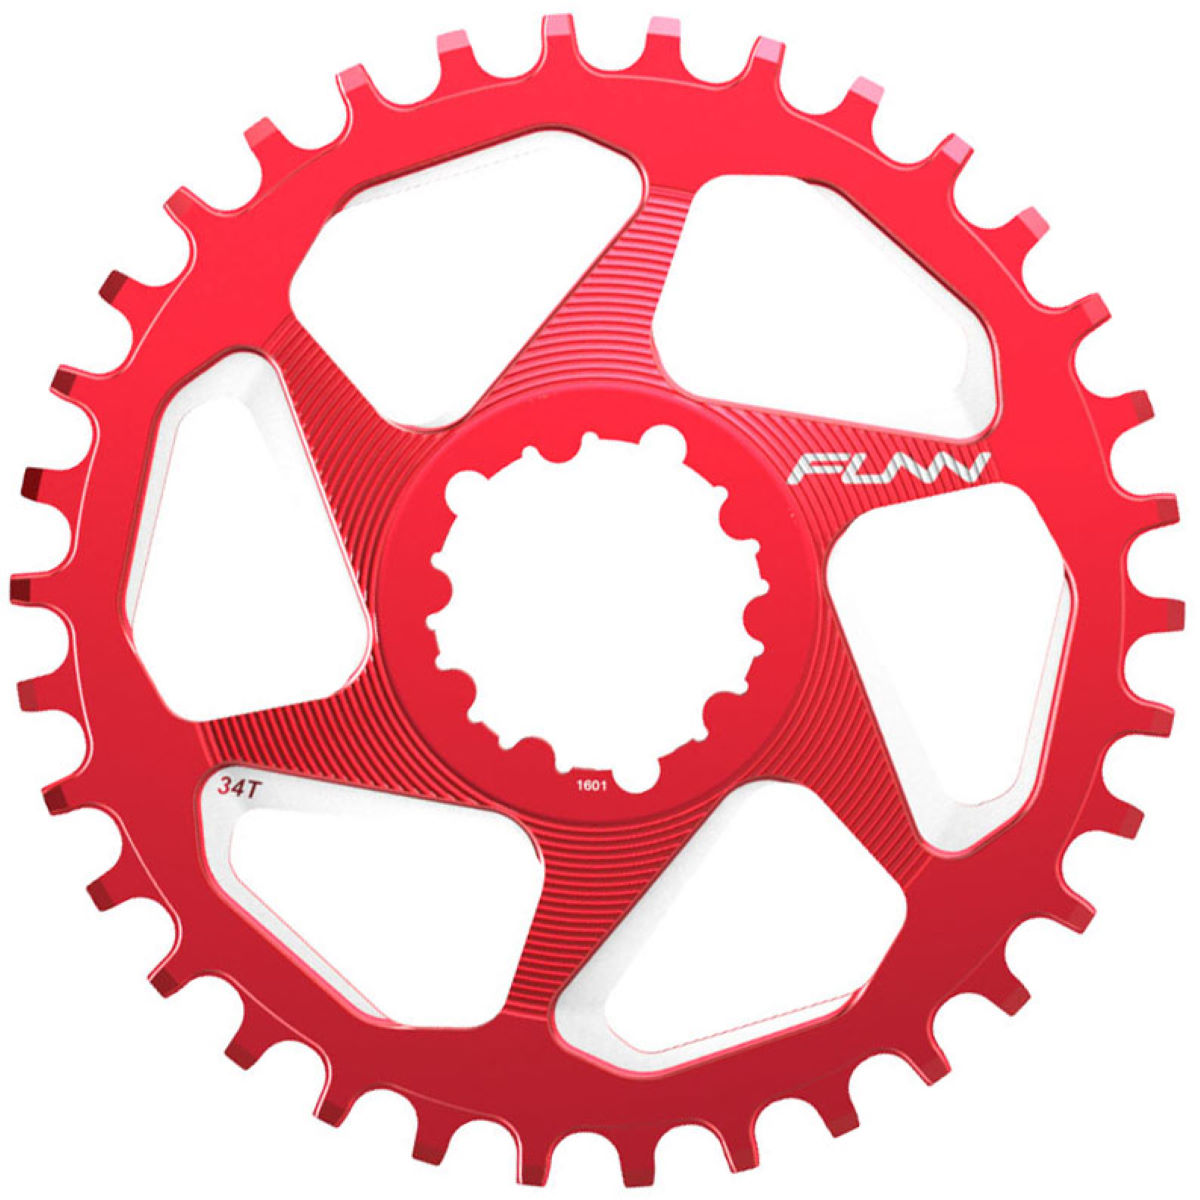 Funn Solo Dx Narrow Wide Chainring - 30t Red  Chain Rings